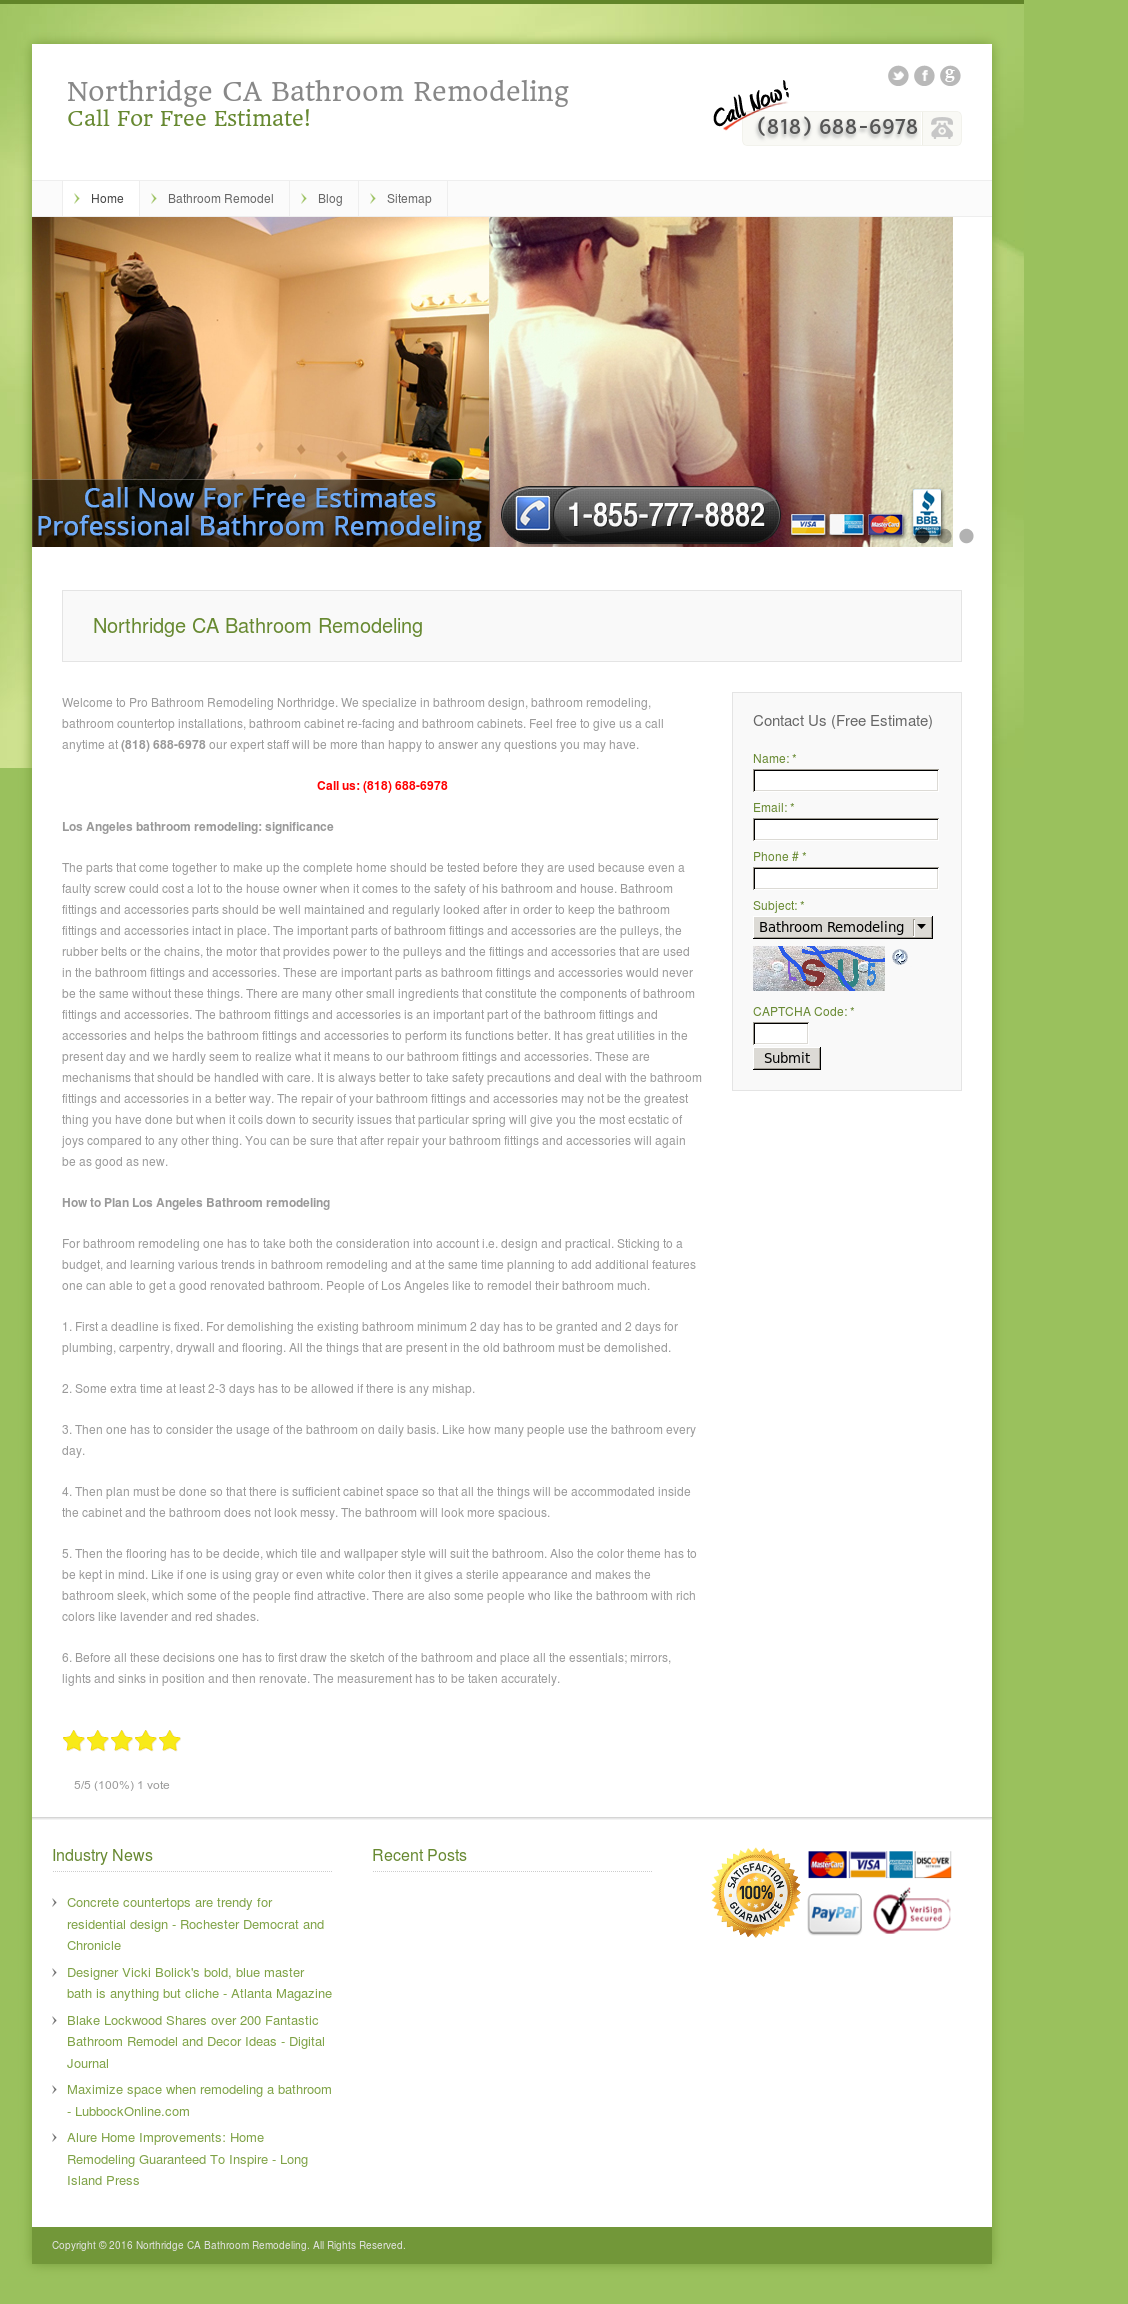 Northridge Ca Bathroom Remodeling Competitors Revenue And Employees - Alure bathroom remodeling